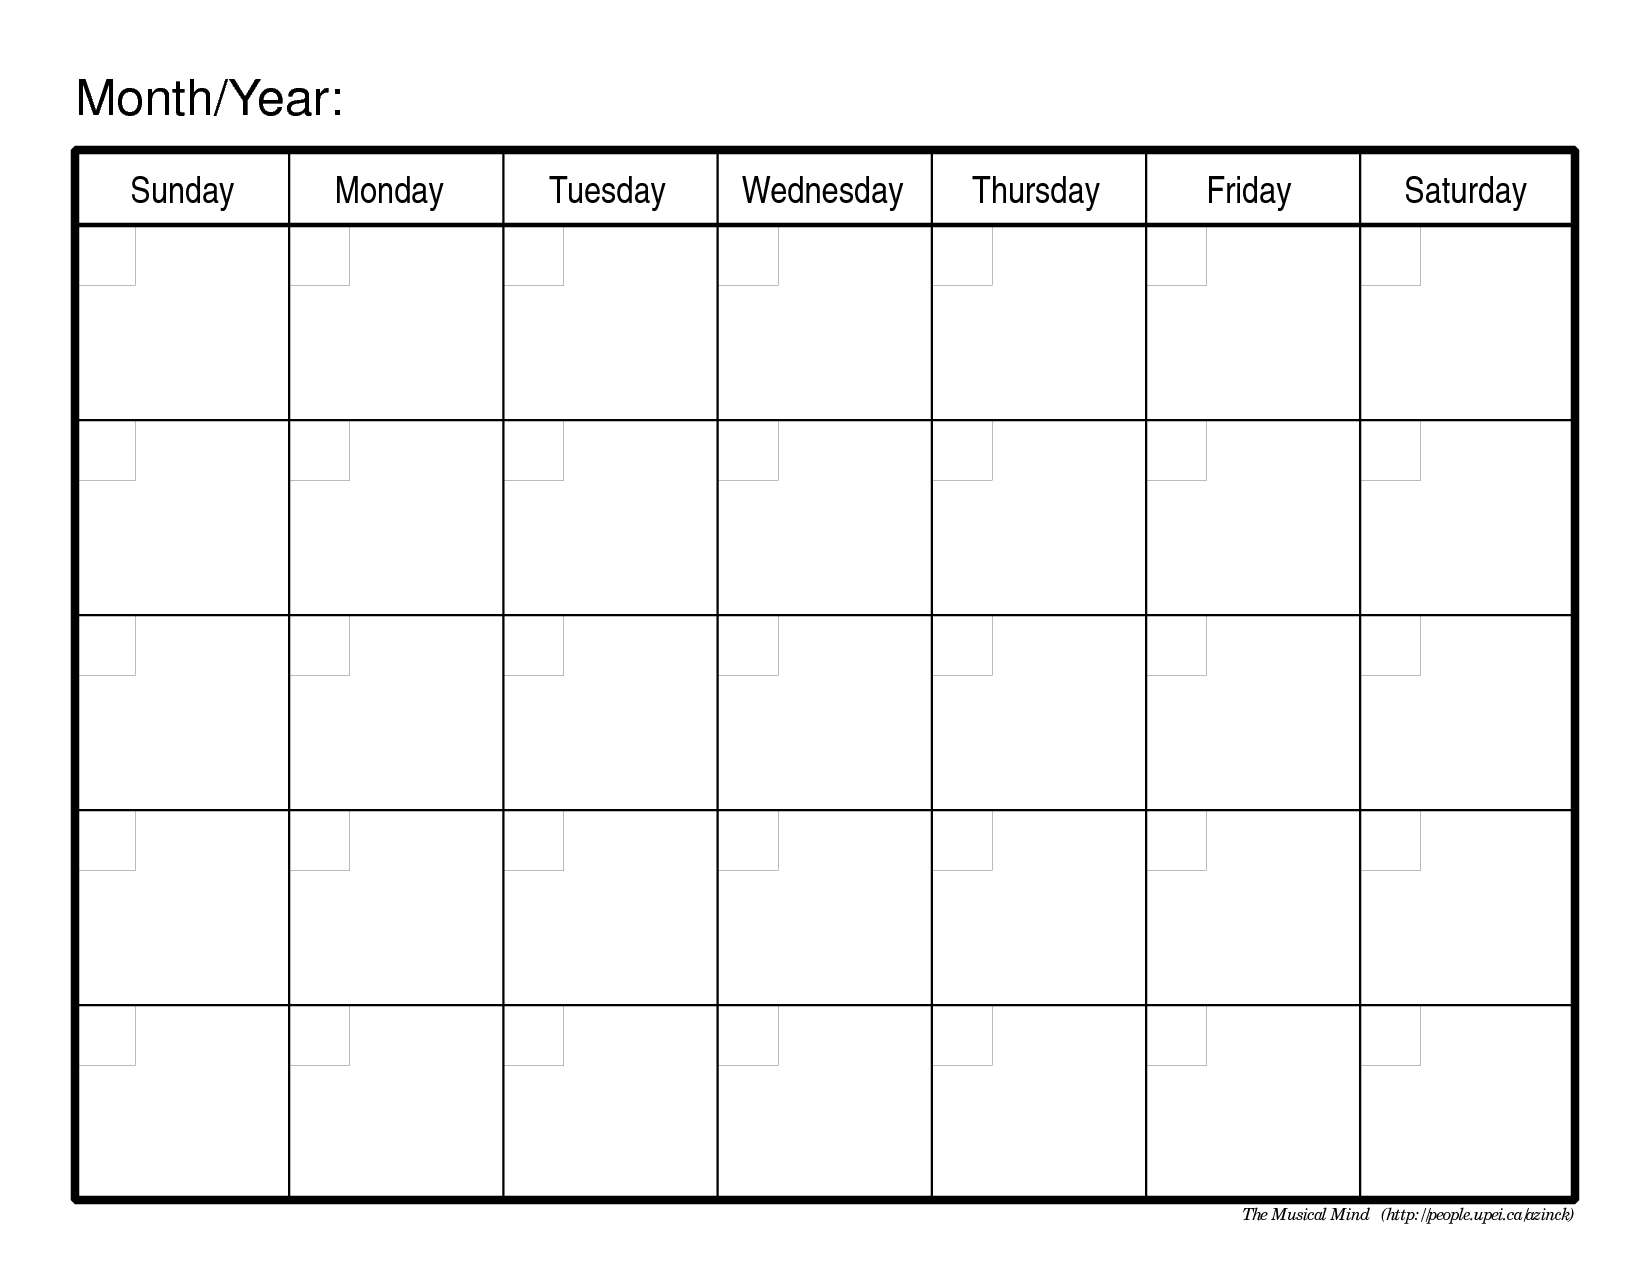 Calendar Templates Printable Free Fieldstation.co | Self Discovery inside Free Blank Calendars By Month